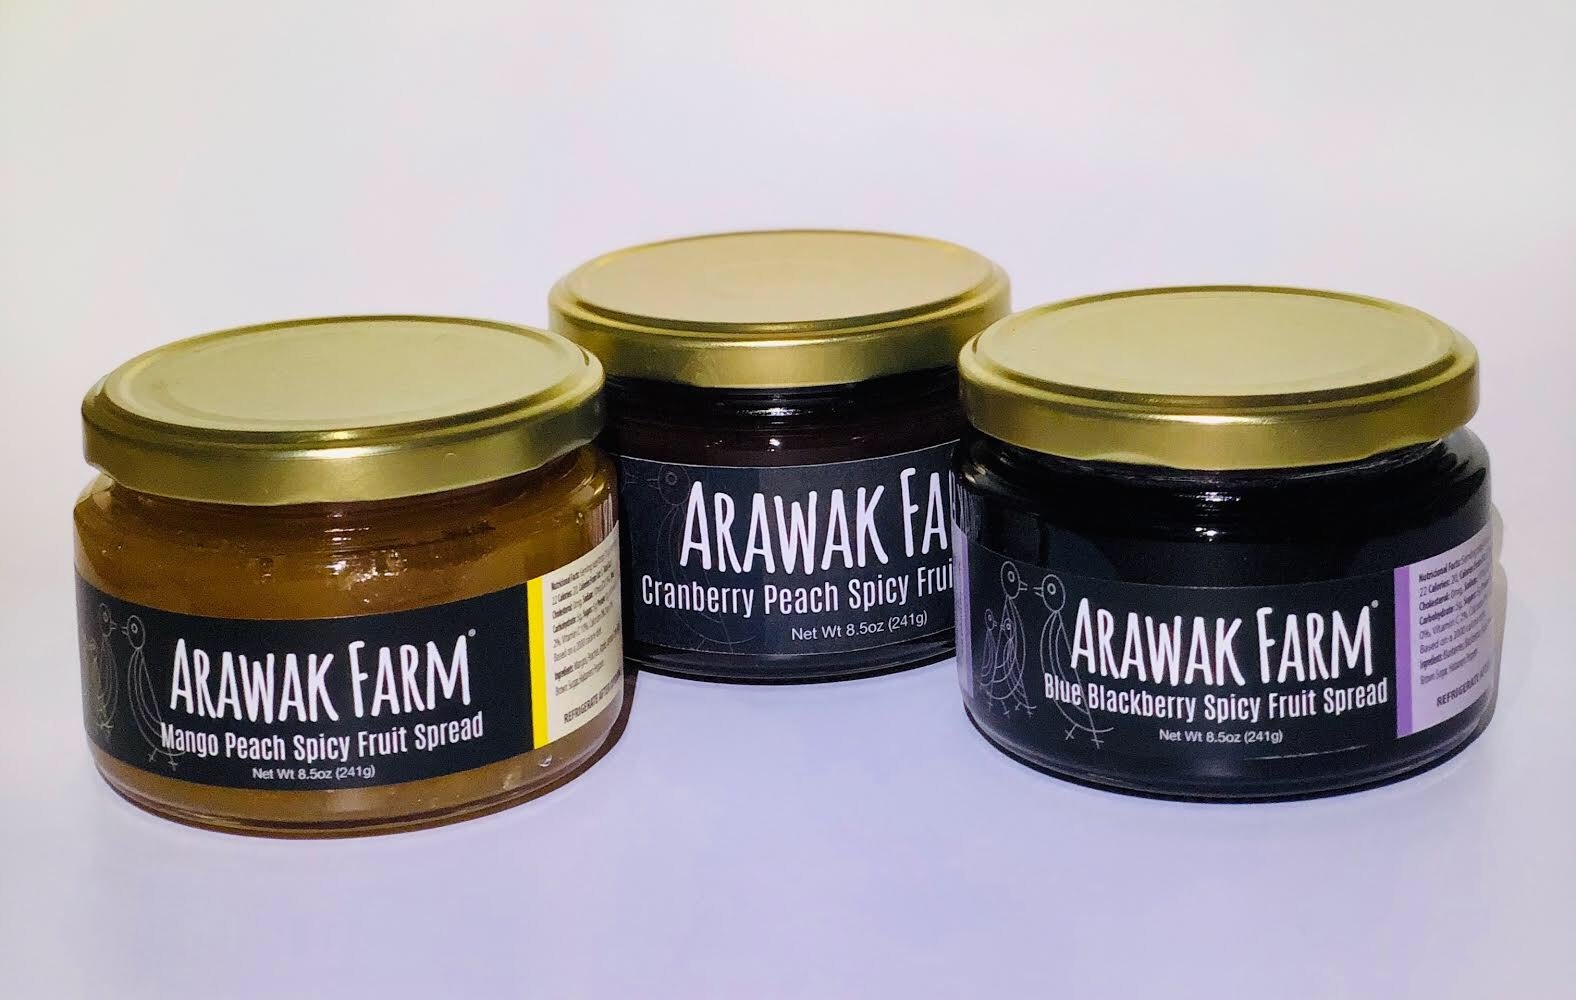 Arawak Farm Spicy Fruit Spreads